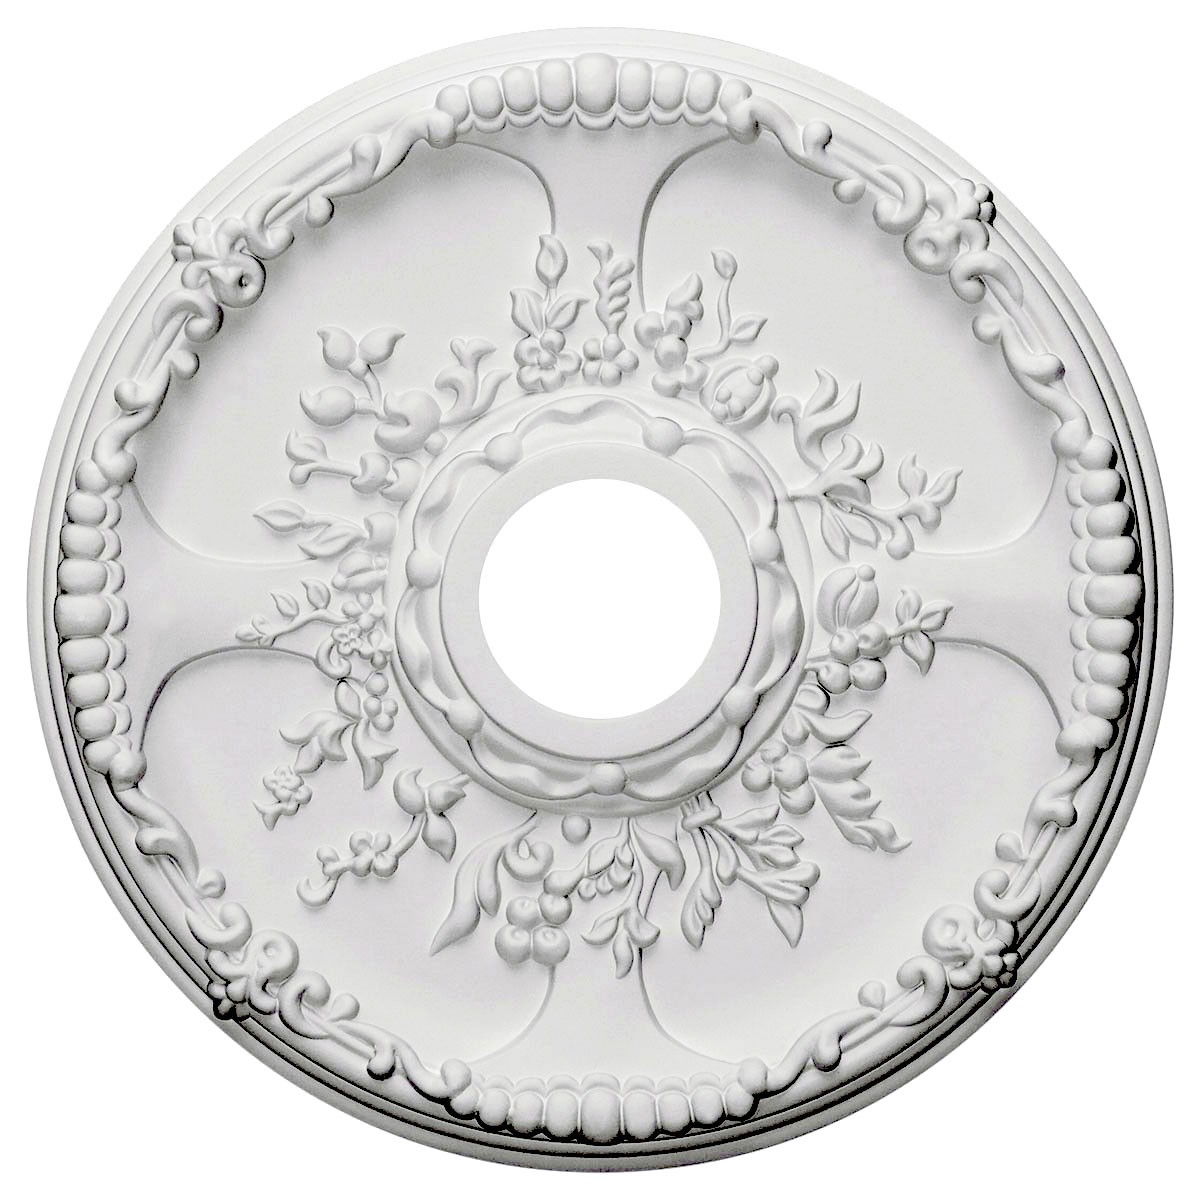 """EM-CM18SE - 18""""OD x 3 1/2""""ID x 1 3/8""""P Antioch Ceiling Medallion (Fits Canopies up to 3 1/2"""")"""